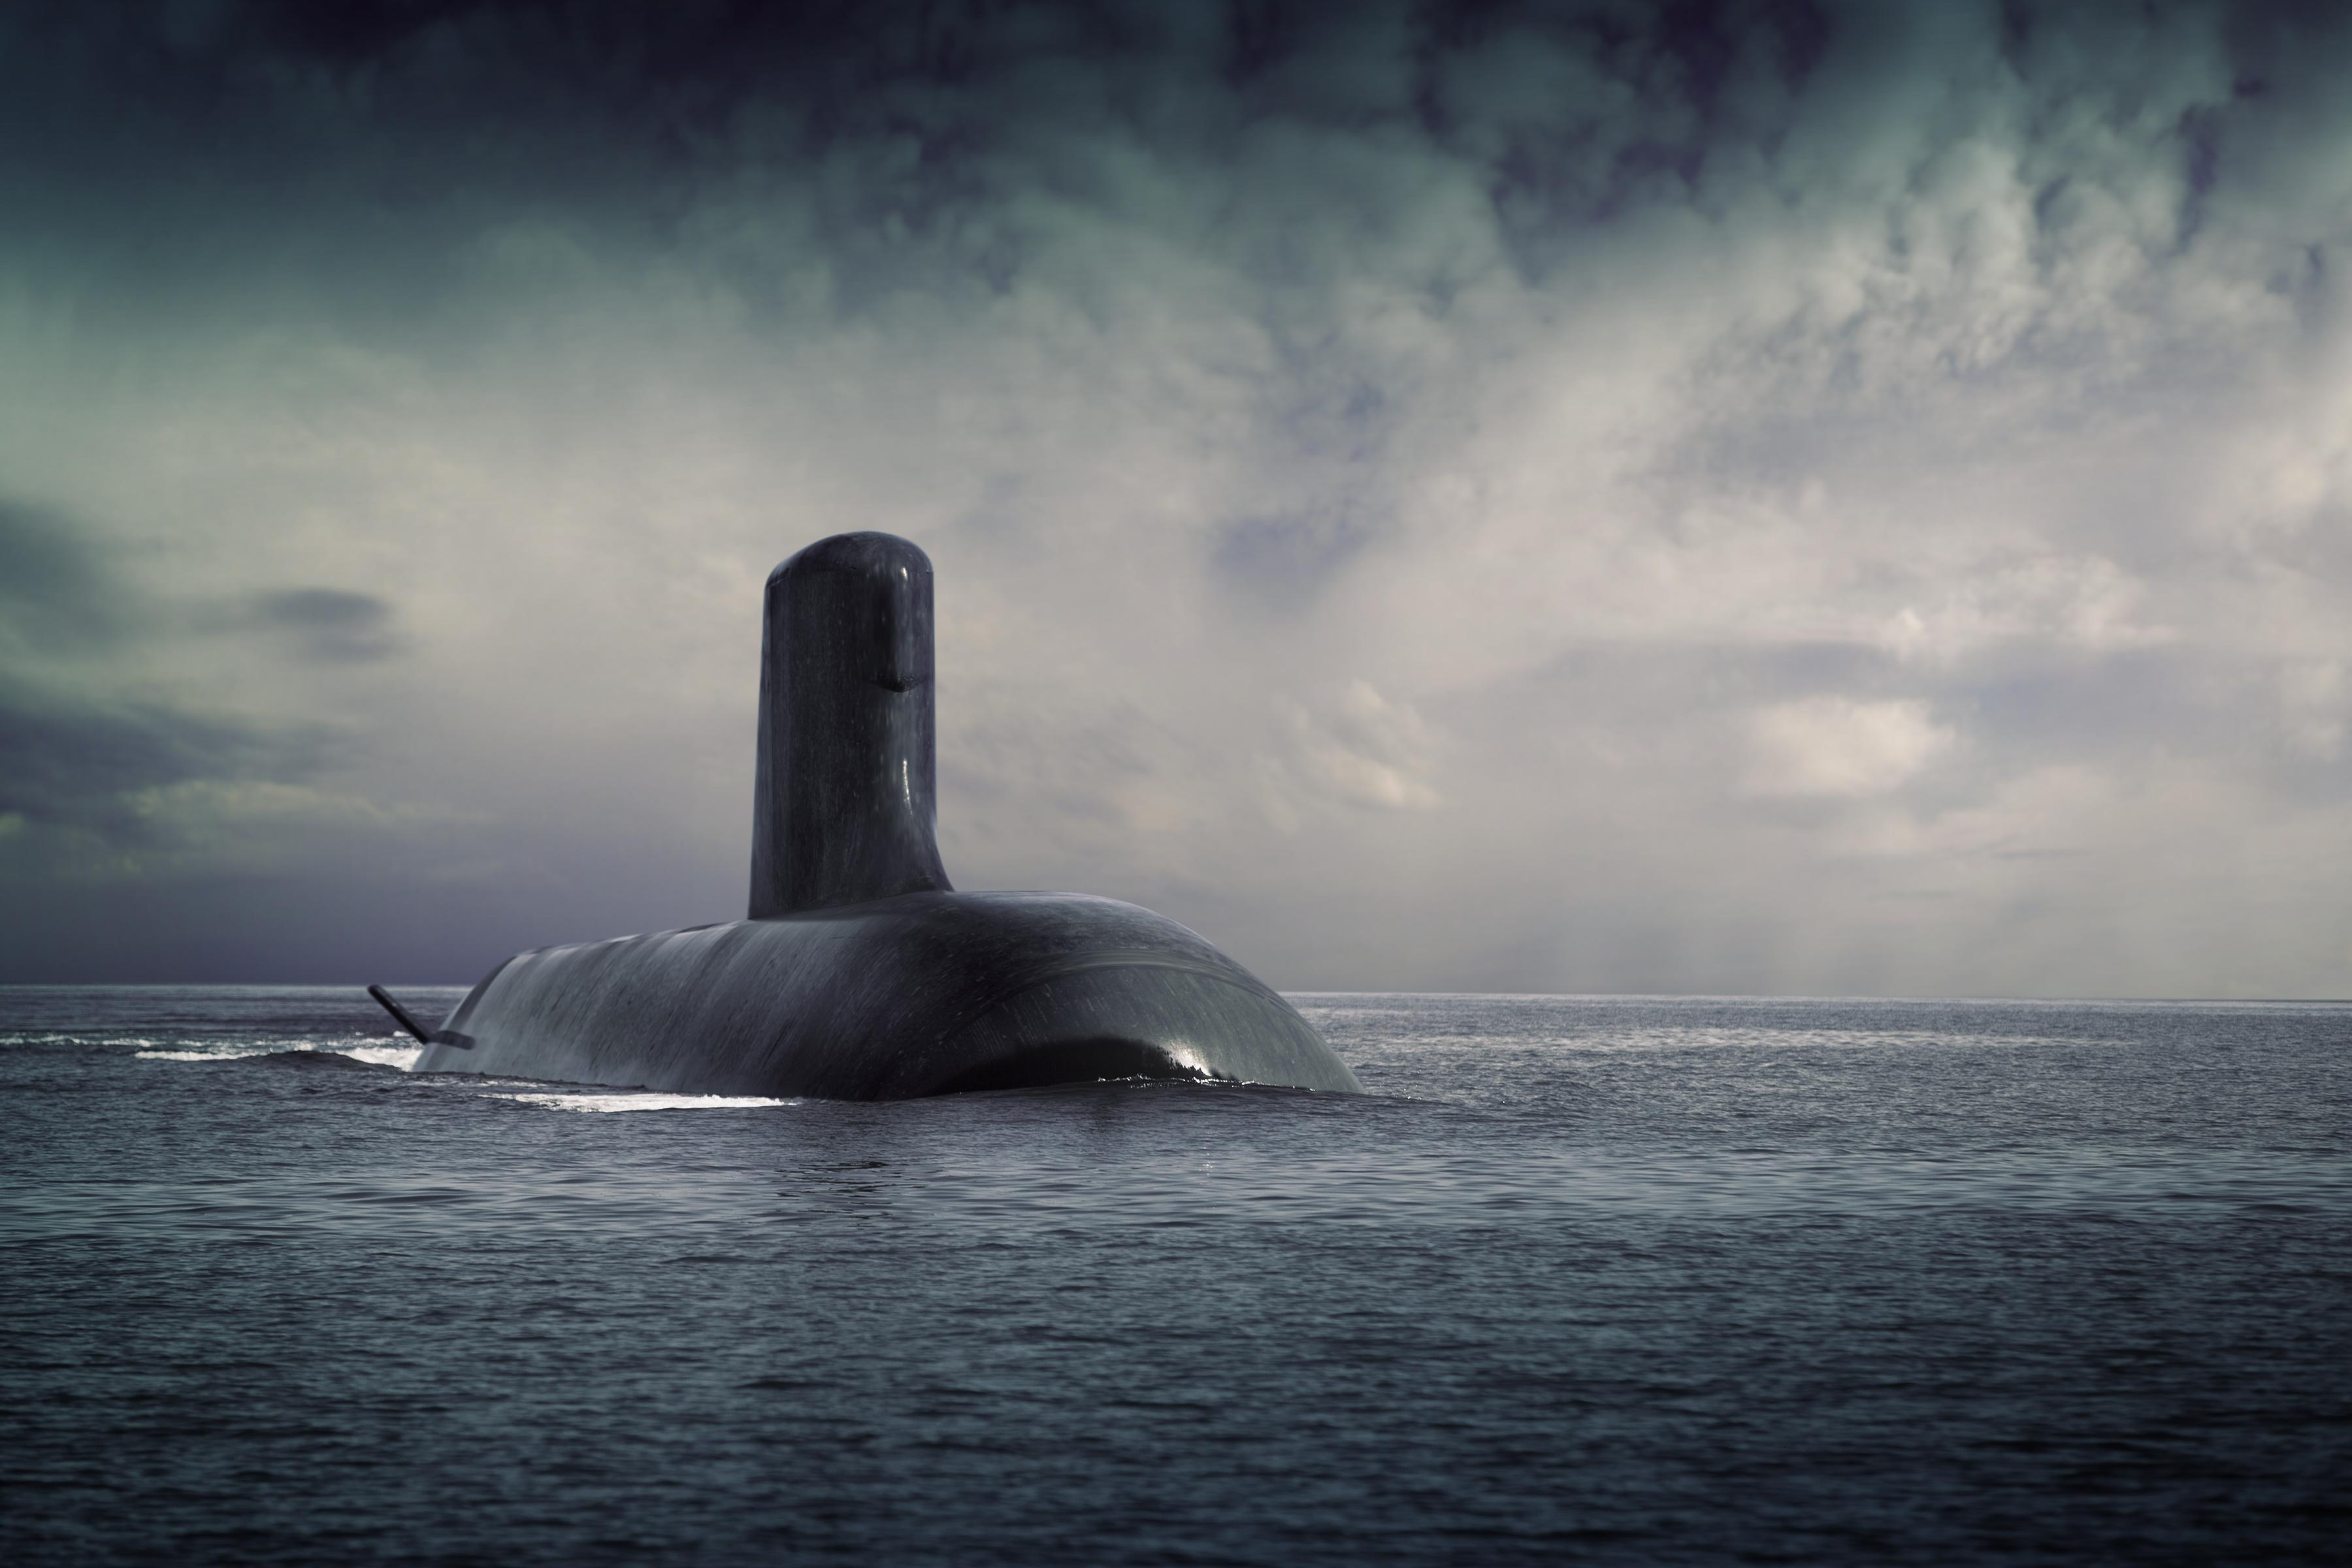 The French Shortfin Barracuda submarine, designed by DCNS.